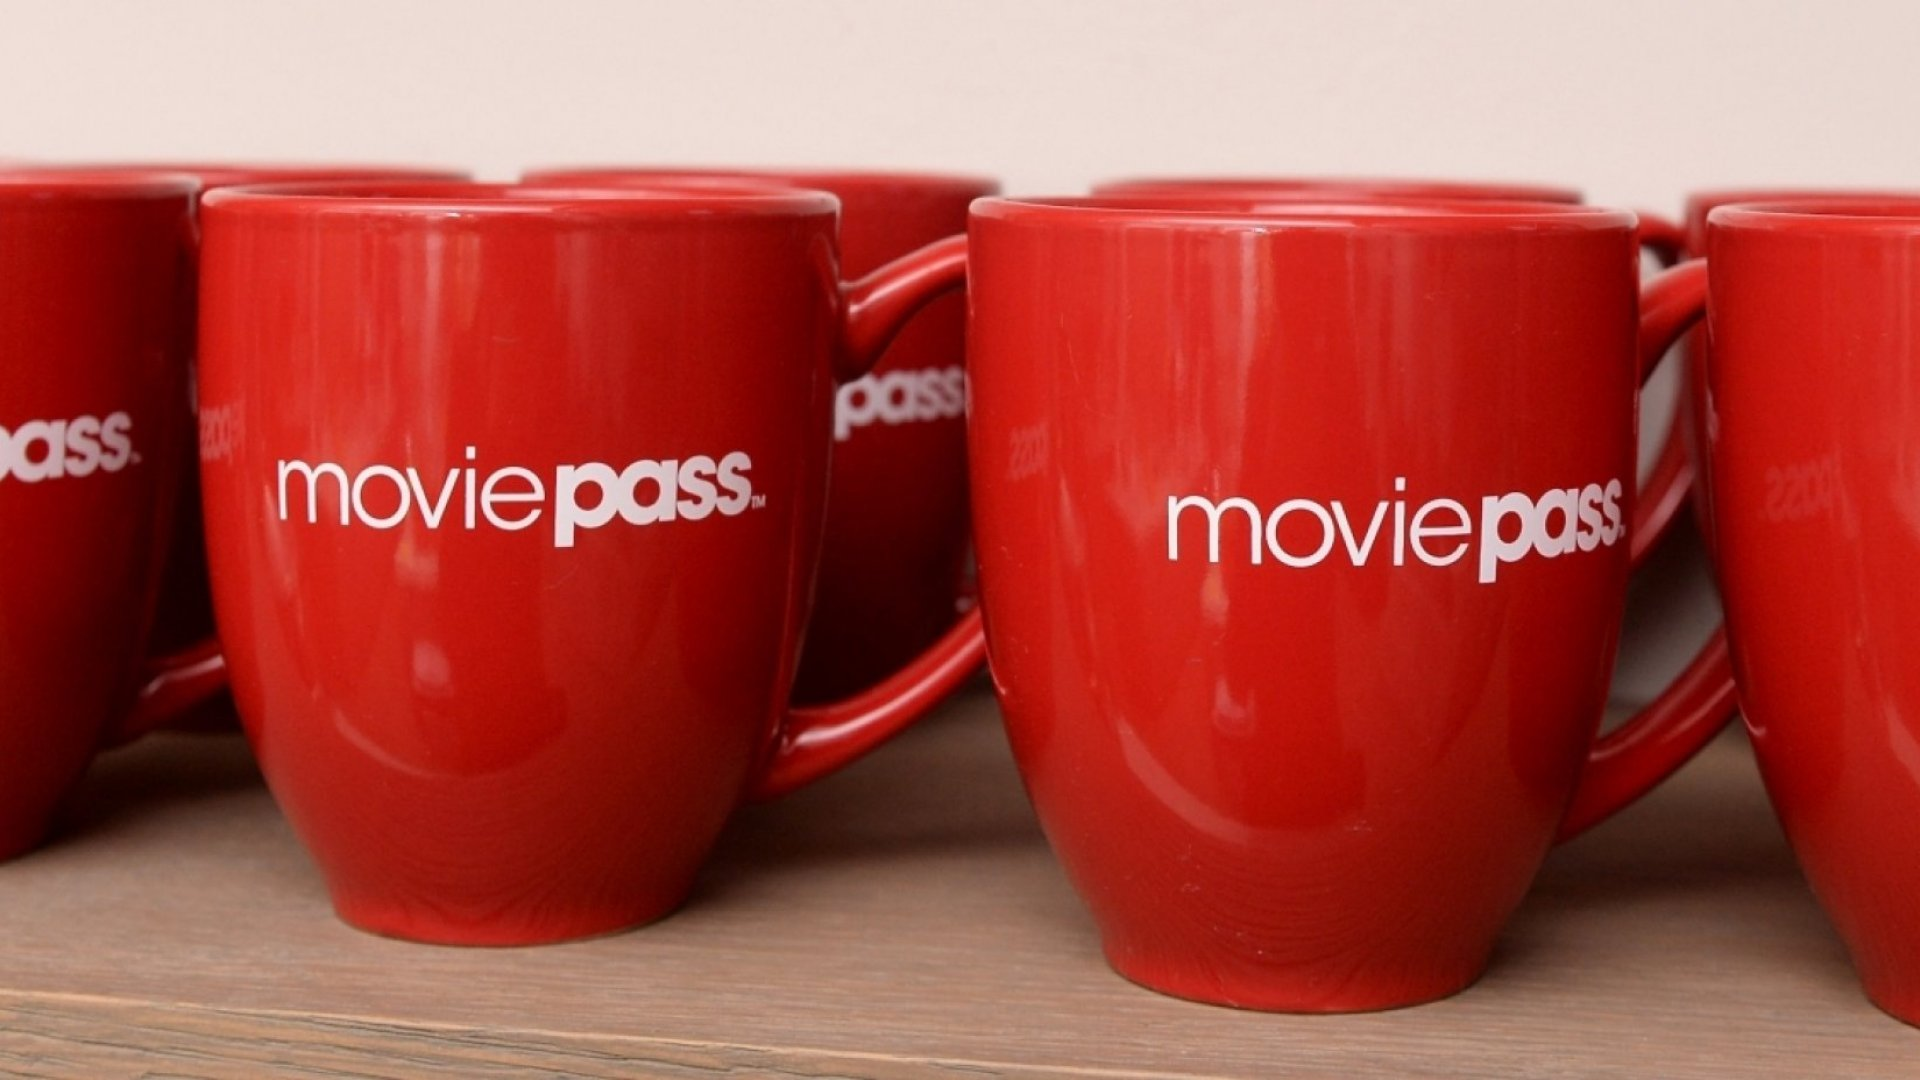 This Turkish Startup Thinks It Can Do Unlimited Movies Better Than Rival Moviepass